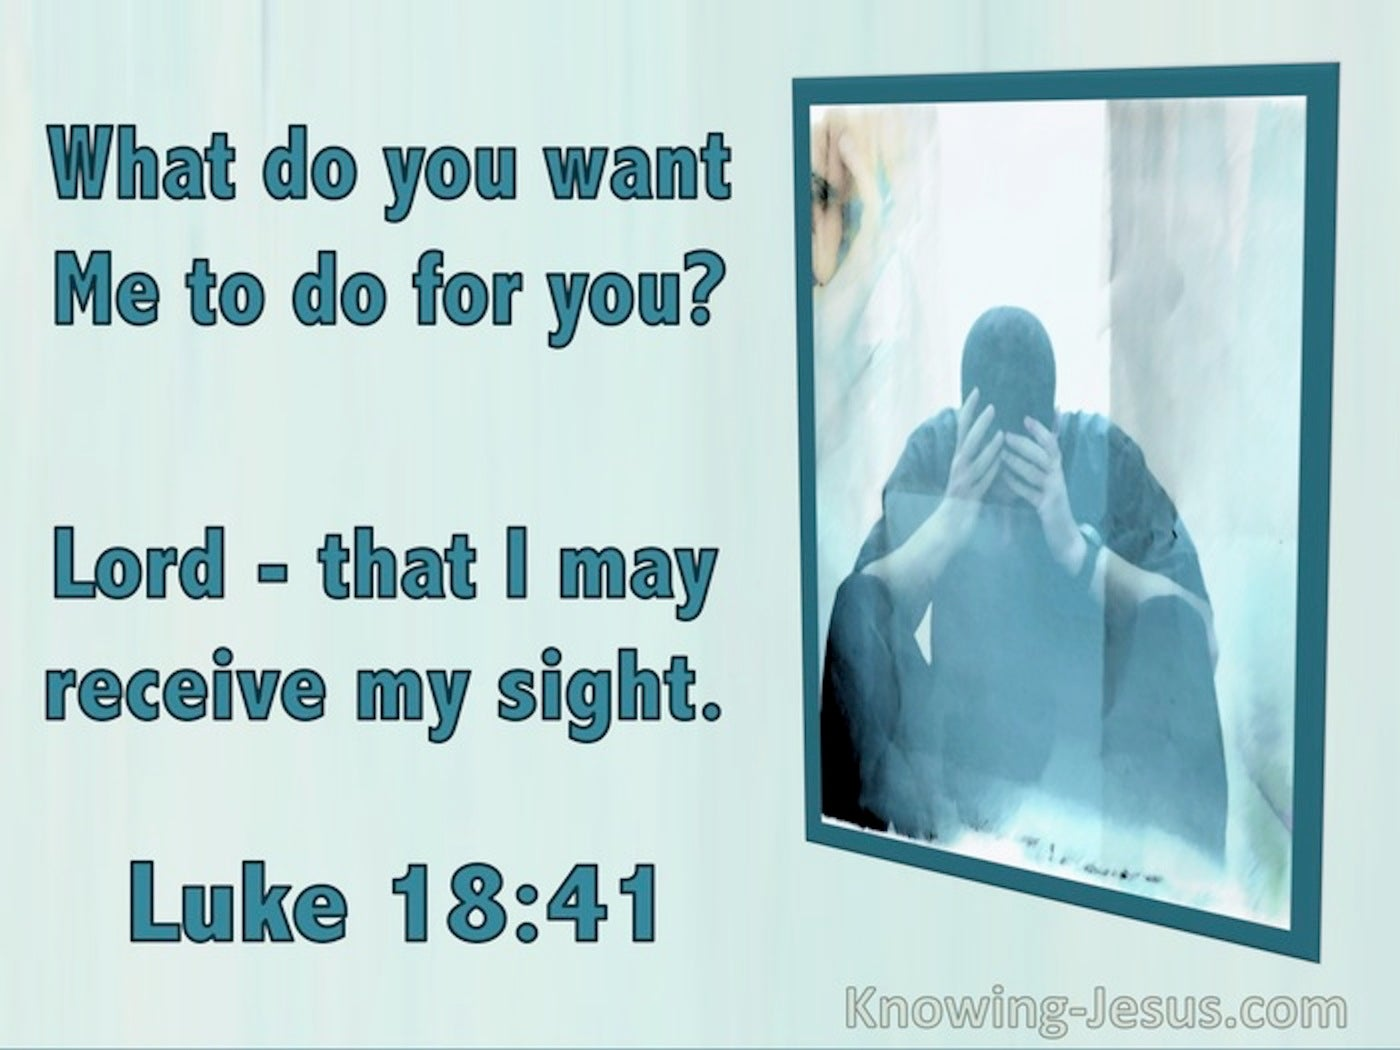 Luke 18:41 What Do You Want Me To Do (utmost)02:29